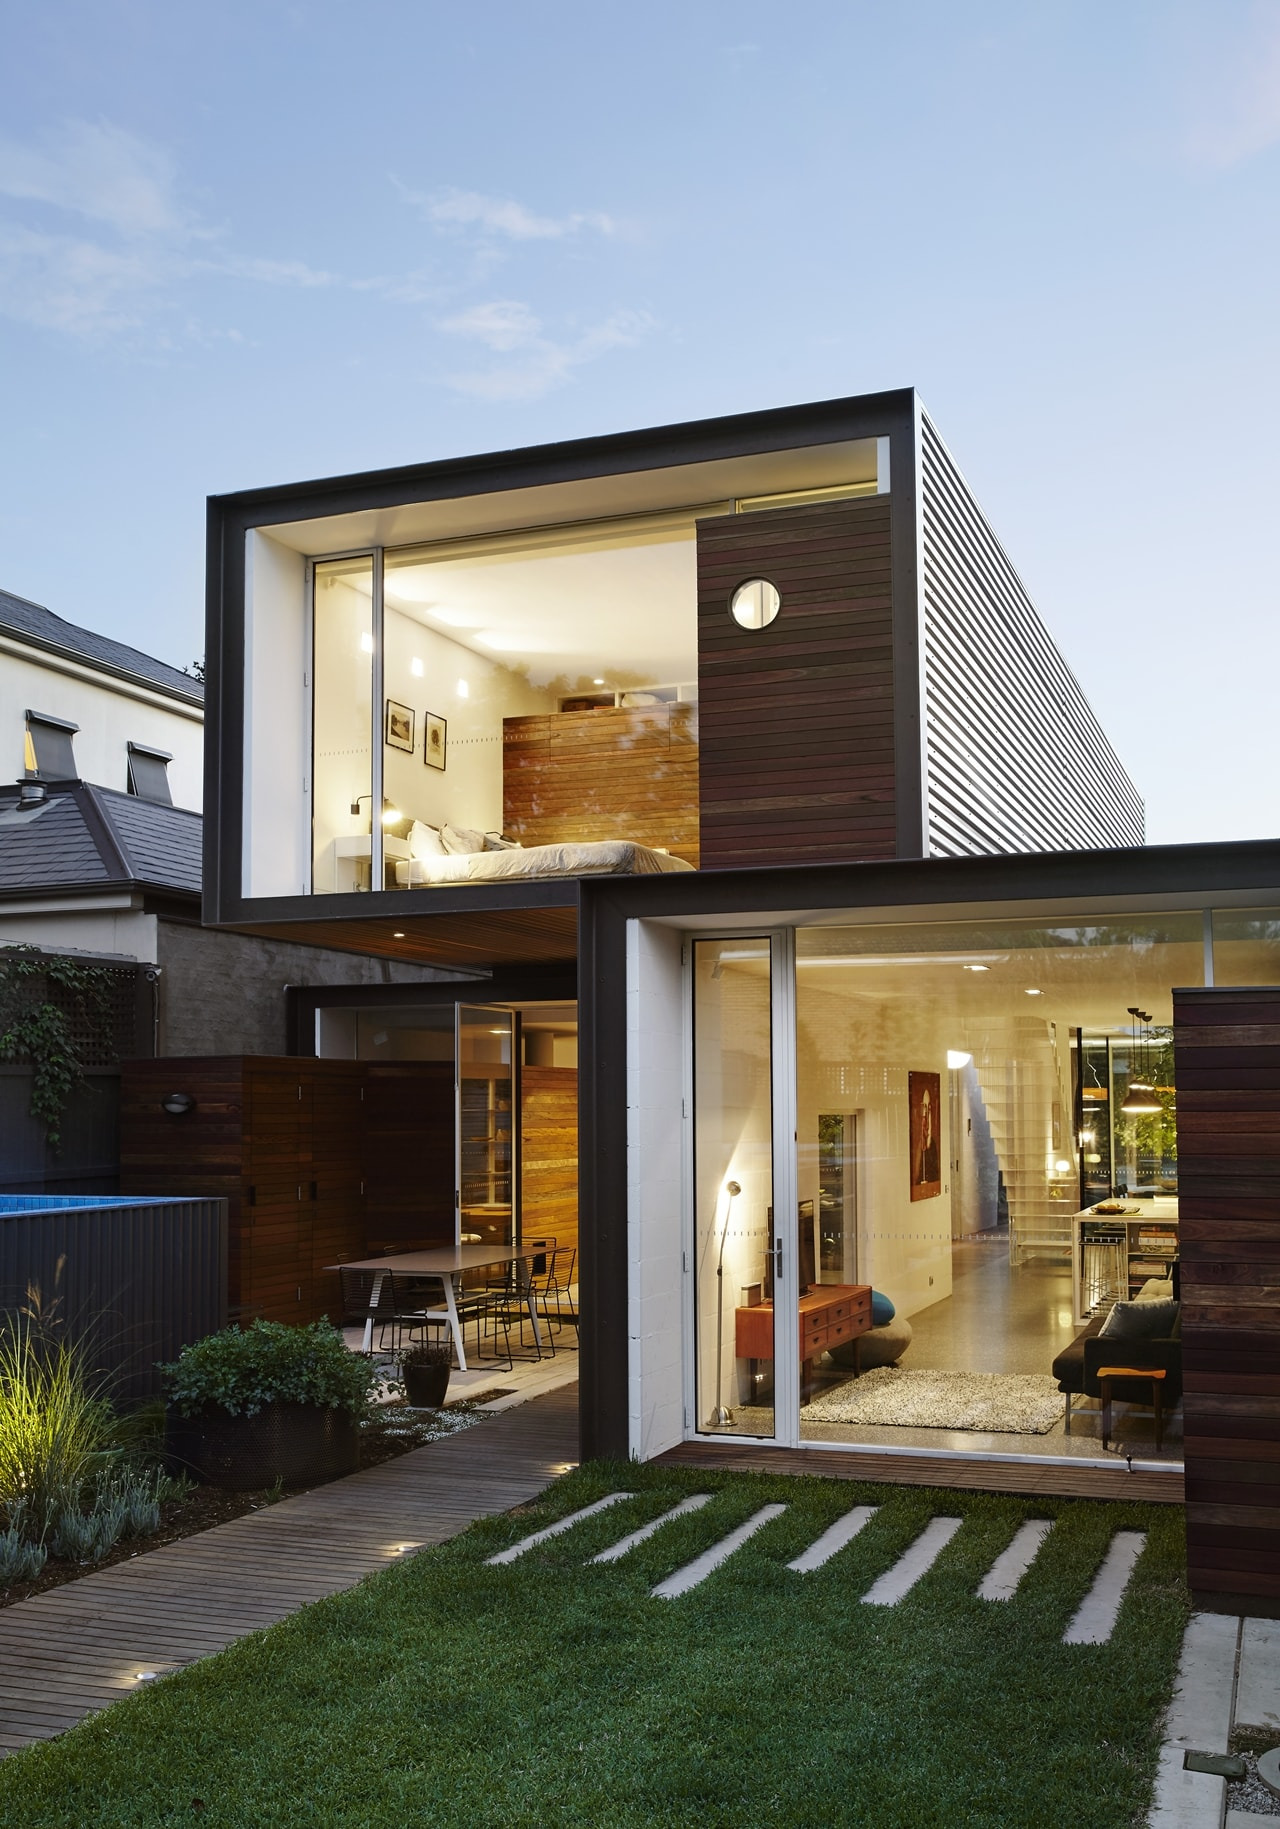 Architecture Design for Home Lovely Open House Design Contemporary Home Connected to the